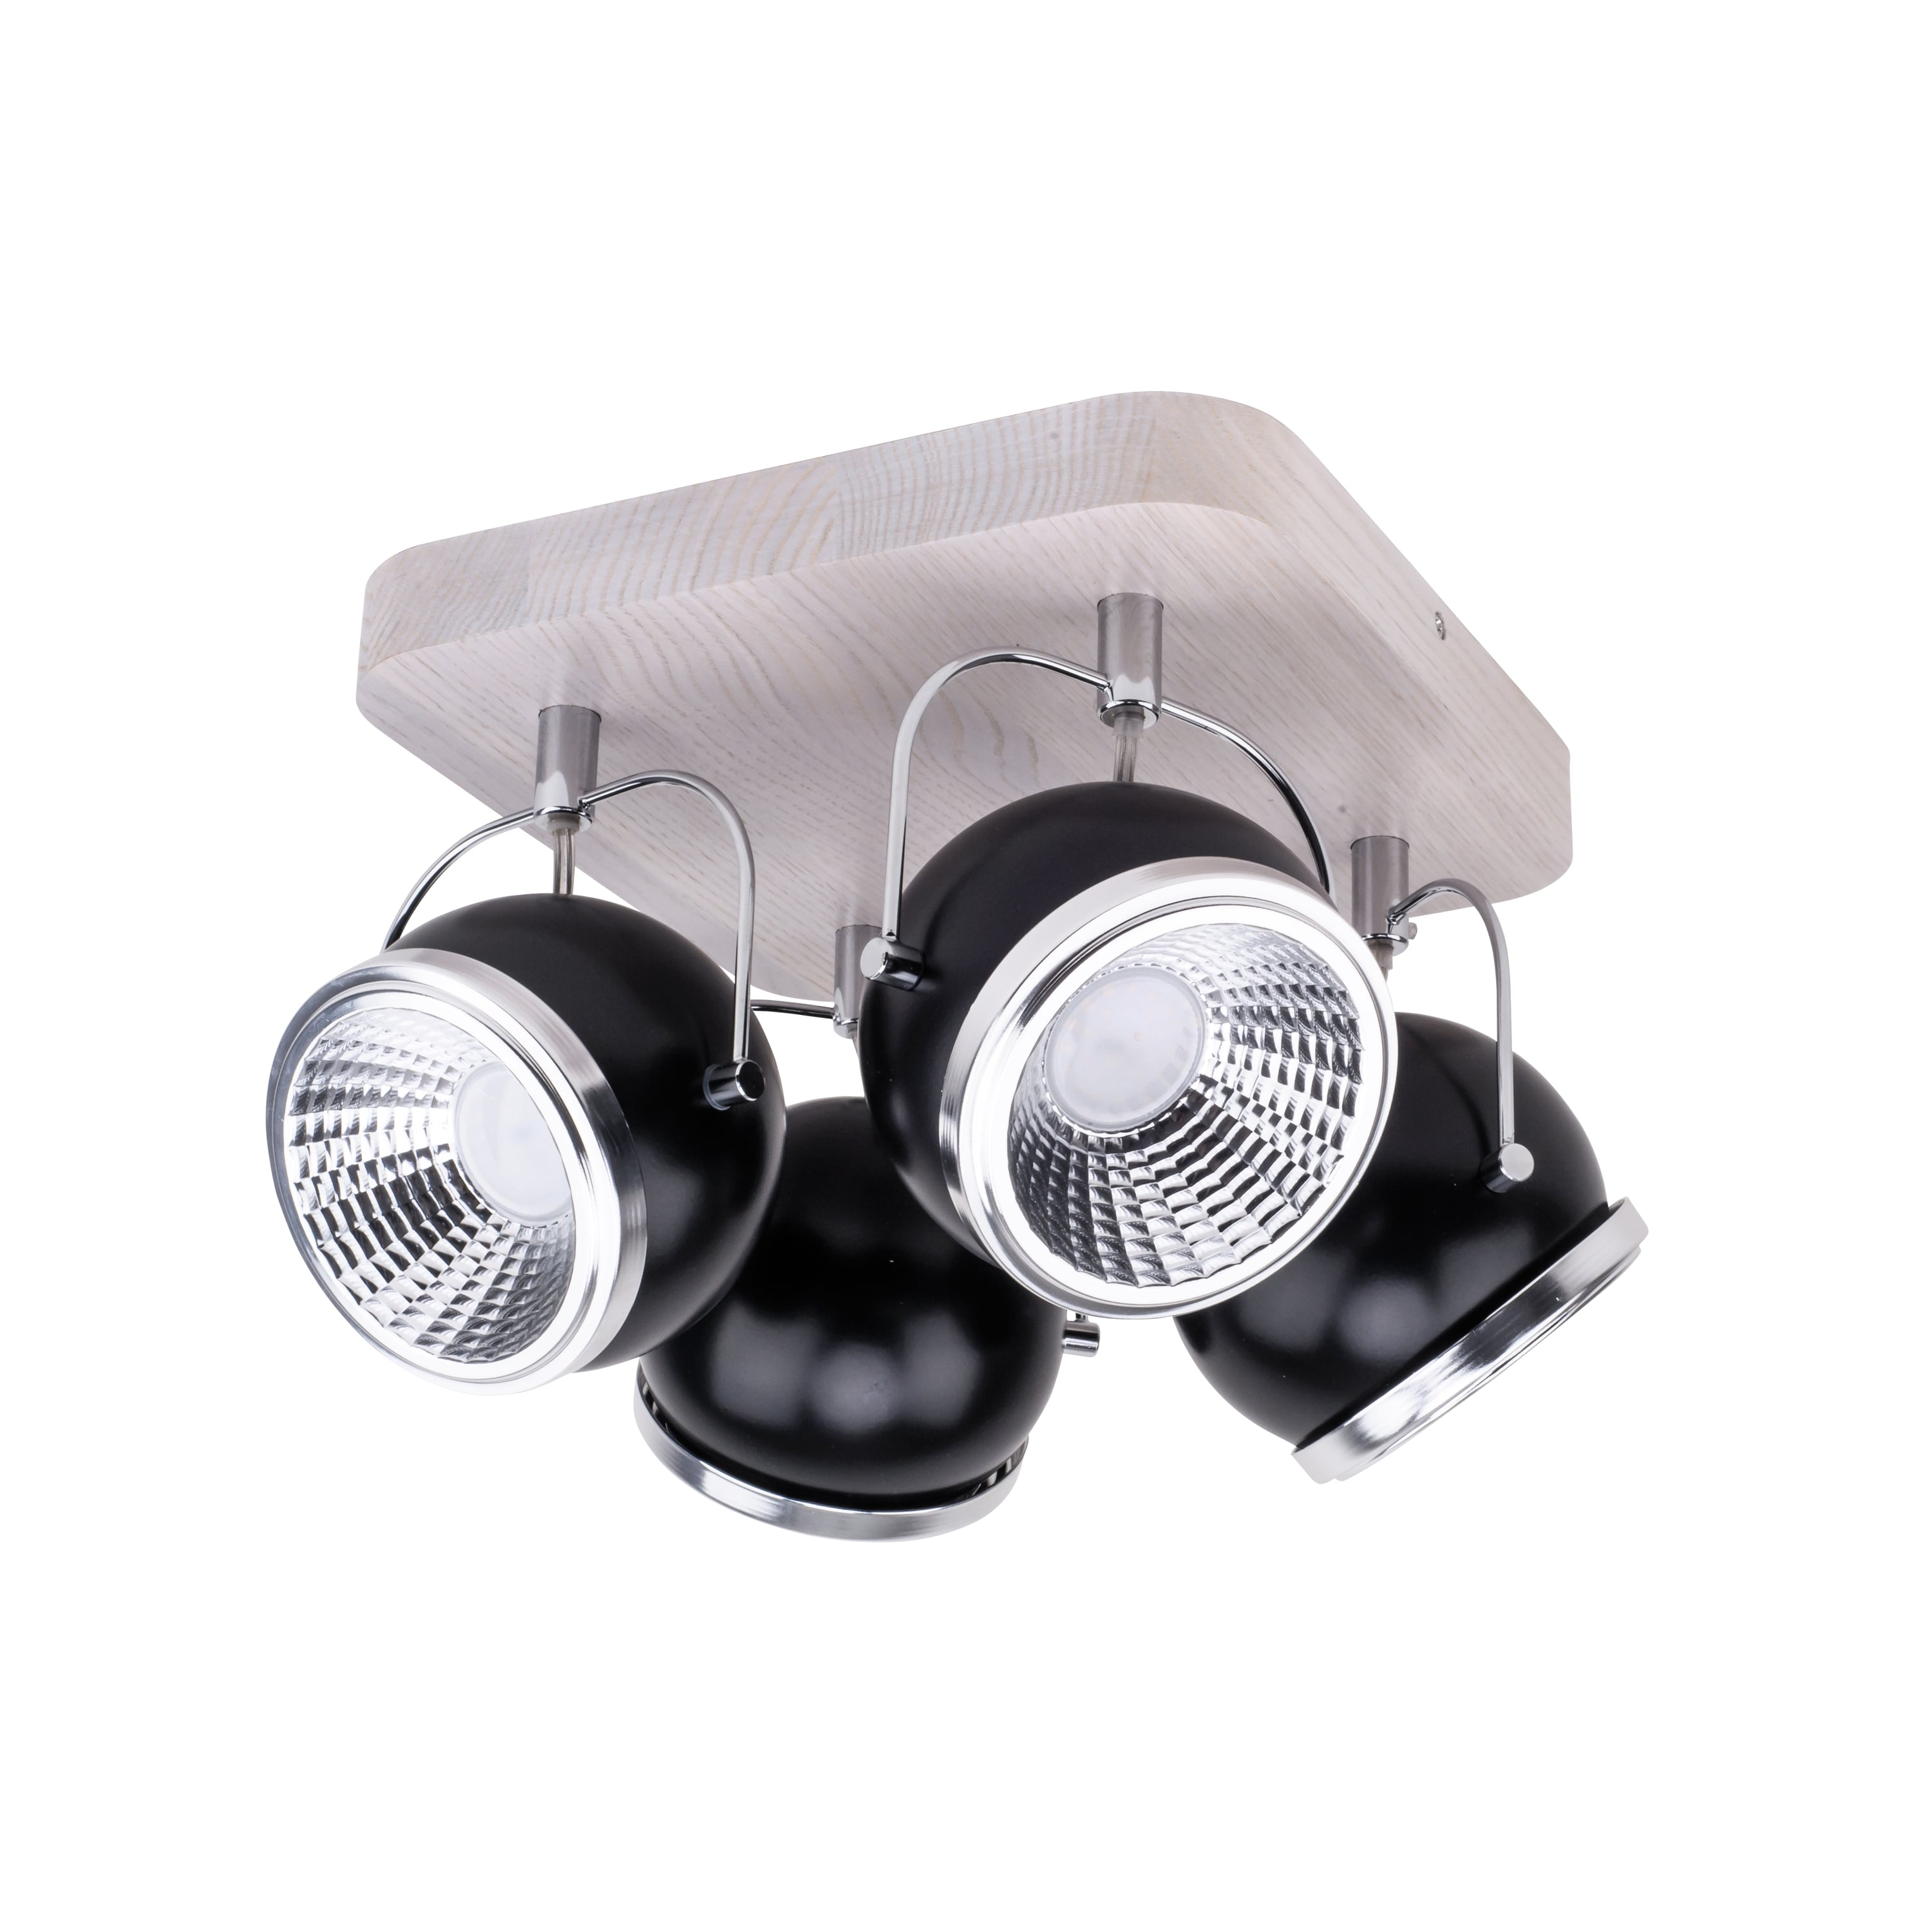 Plafon Ball Wood dąb bielony / crom / LED negru GU10 5,5W